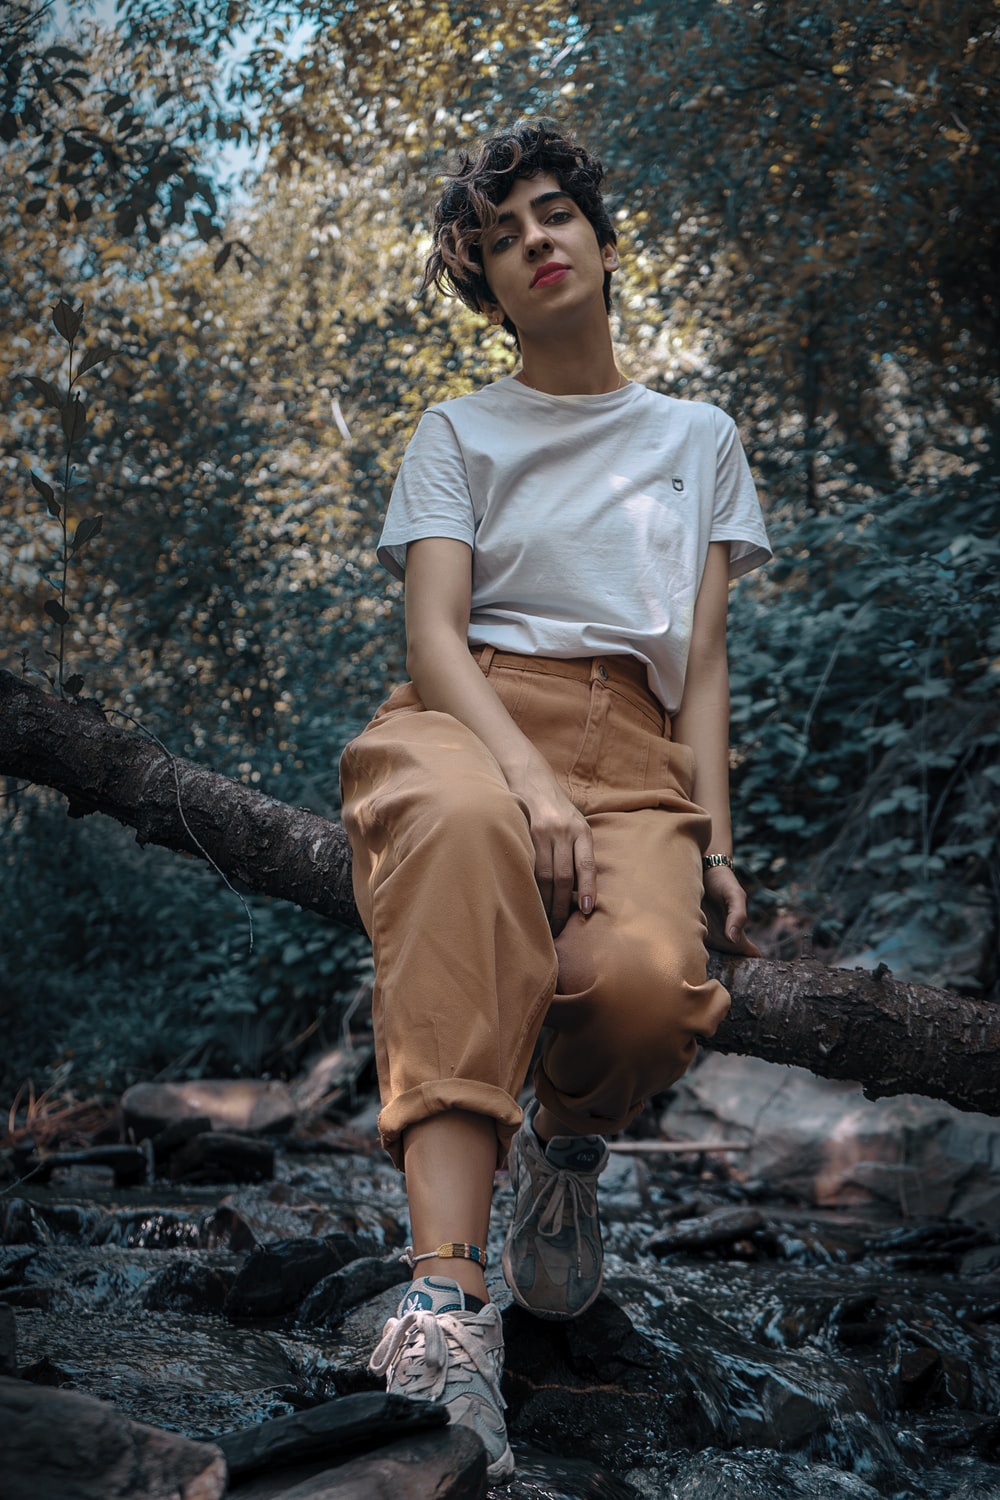 woman in white crew neck t-shirt and brown pants sitting on tree branch during daytime